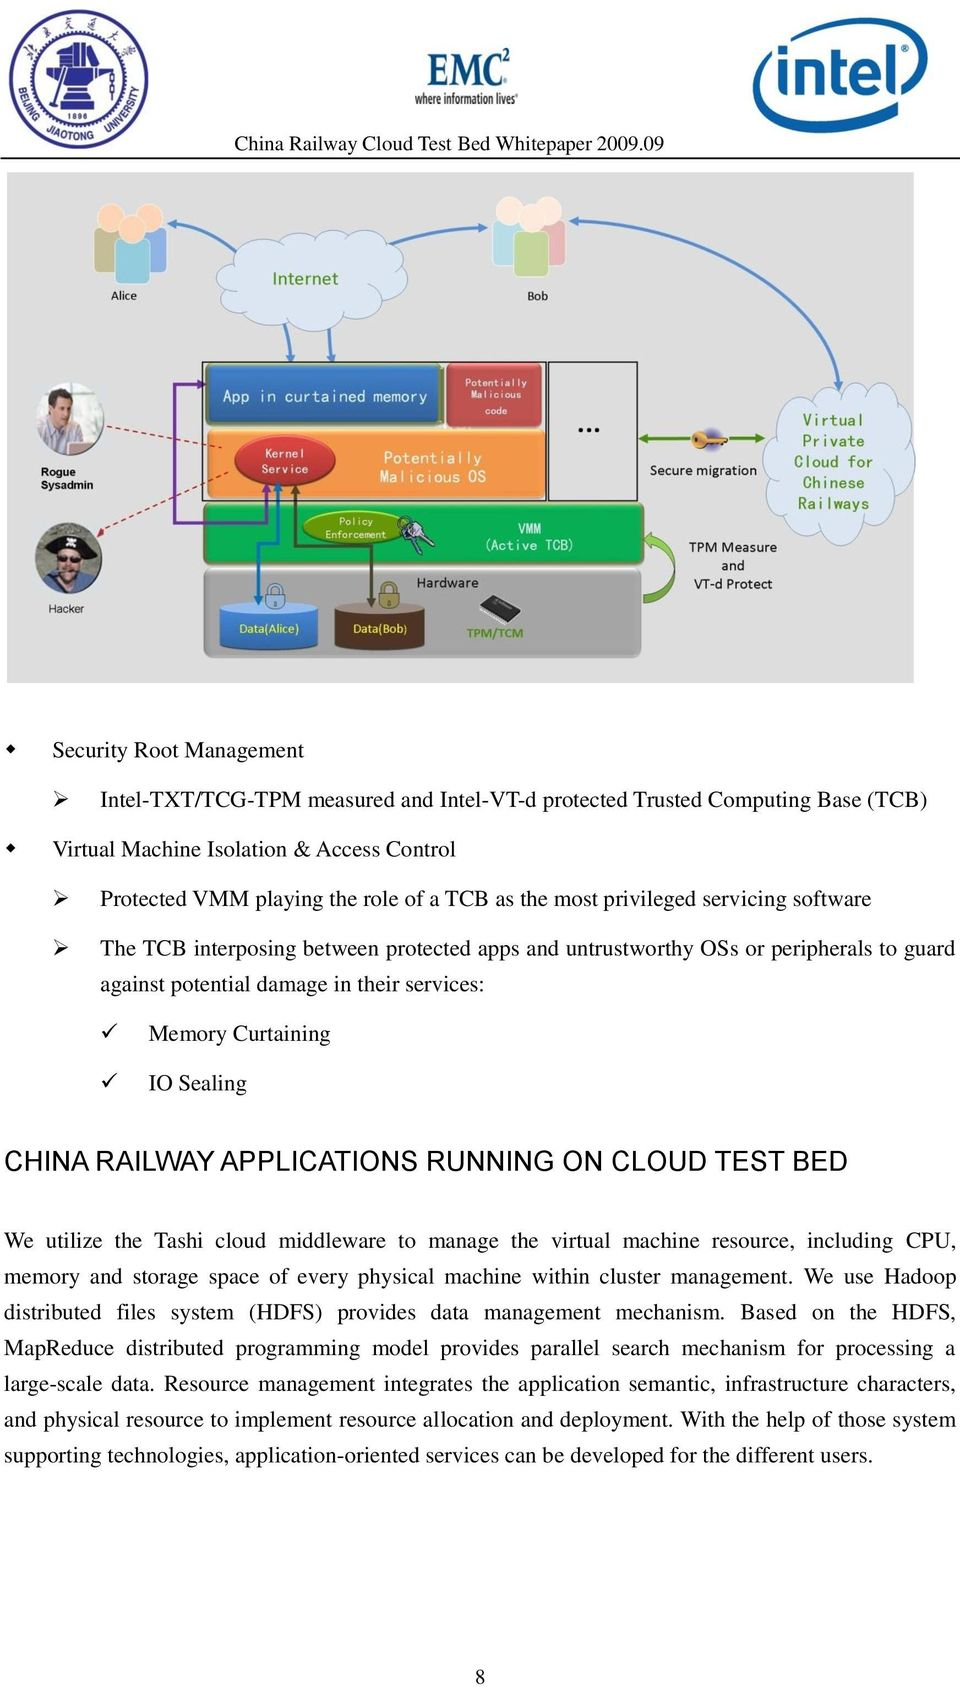 CHINA RAILWAY APPLICATIONS RUNNING ON CLOUD TEST BED We utilize the Tashi cloud middleware to manage the virtual machine resource, including CPU, memory and storage space of every physical machine